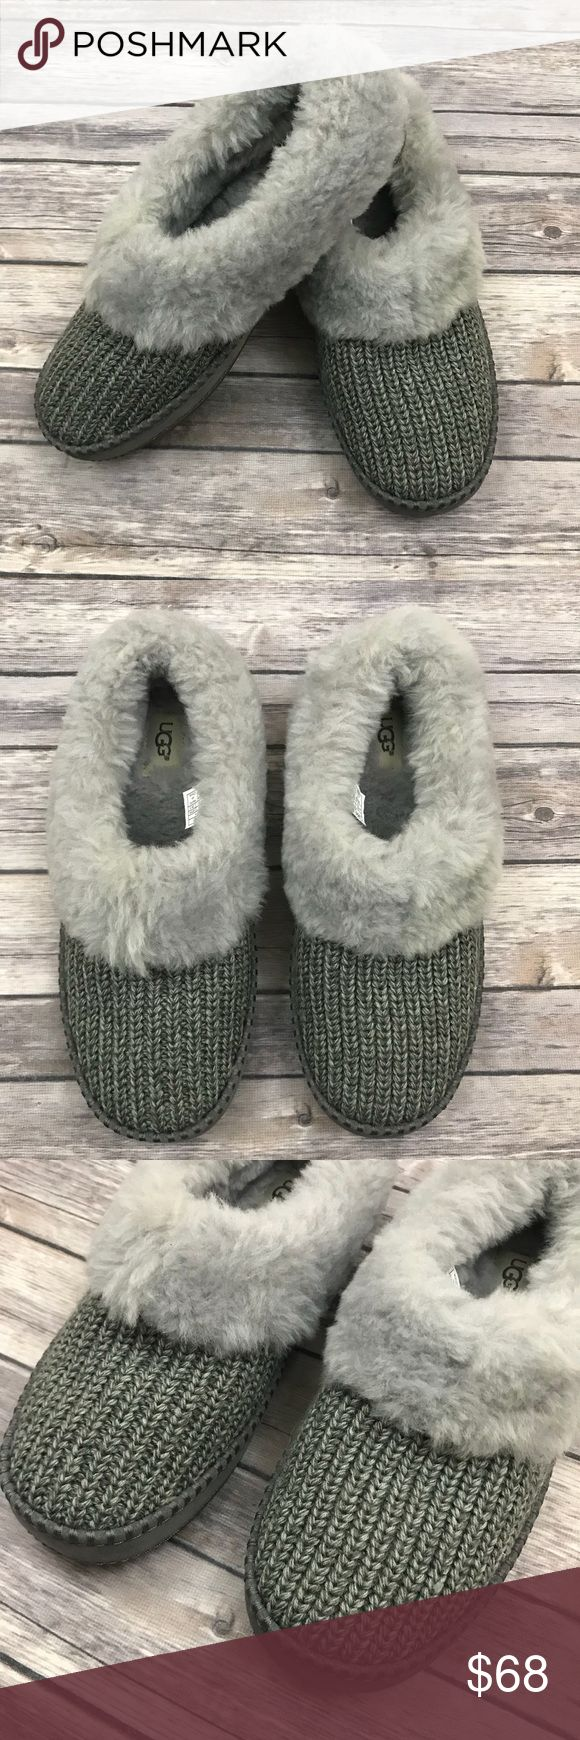 New Ugg Australia Wrin Rib-Knit Shearling Slippers Ugg Australia Wrin Rib-Knit & Genuine Shearling Slipper in Grey Suede •New without box •Size 10 •Retails for $119.95  Check out my other listings- Nike, adidas, Michael Kors, Hunter Boots, Kate Spade, Miss Me, Rock Revival, Coach, Wildfox, Victoria's Secret, PINK, True Religion, Ugg Australia, Free People and more! UGG Shoes Slippers